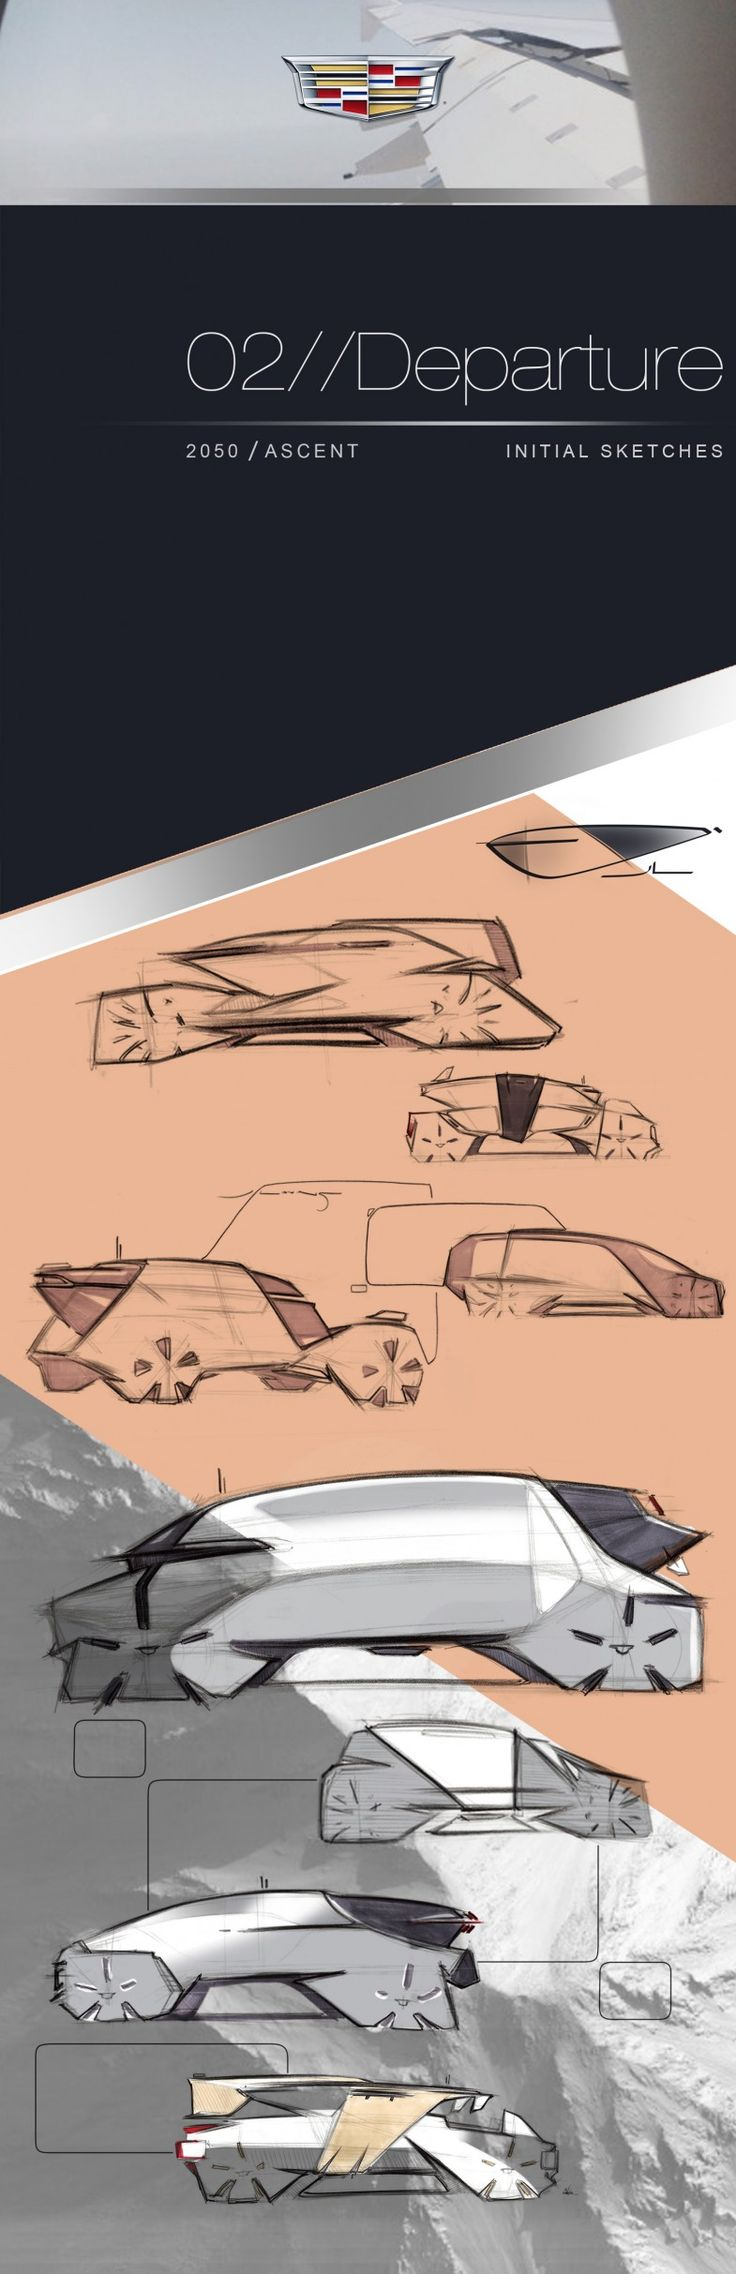 screen-02_departure_sketches.jpg (785×2426)